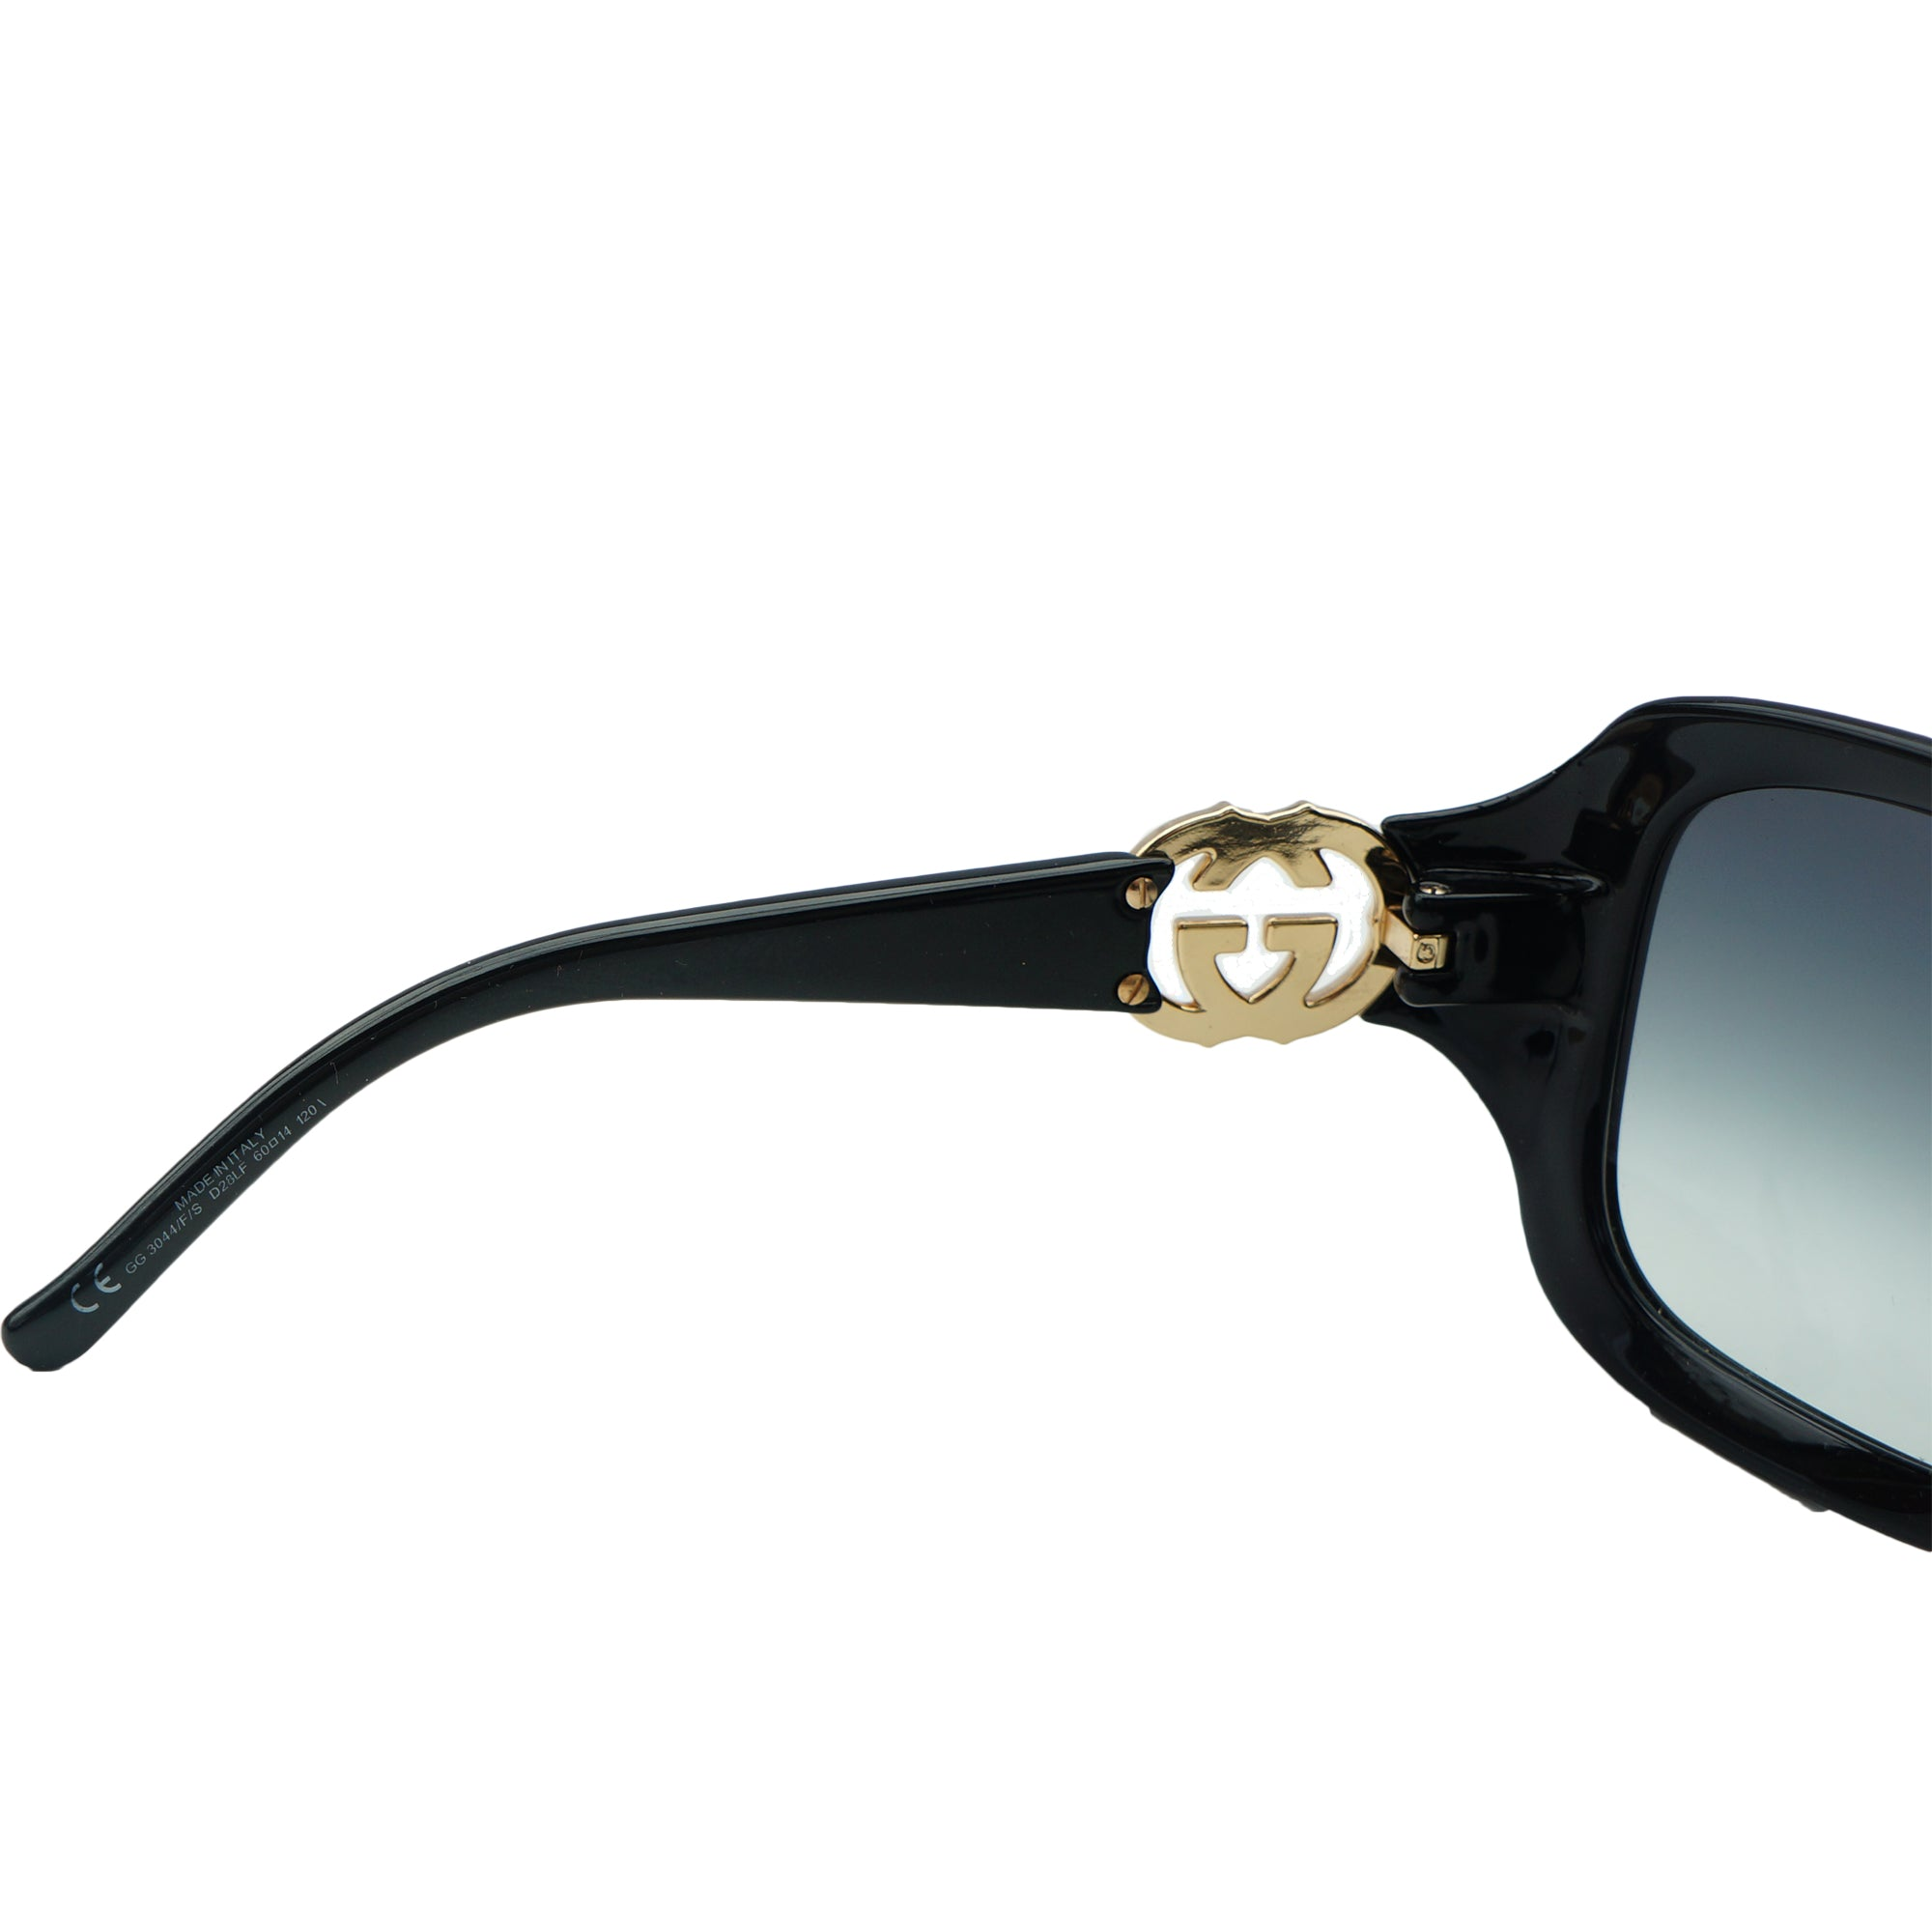 99b2558835 ... GUCCI GG BAMBOO GRADIENT SUNGLASSES Shop online the best value on authentic  designer used preowned consignment ...